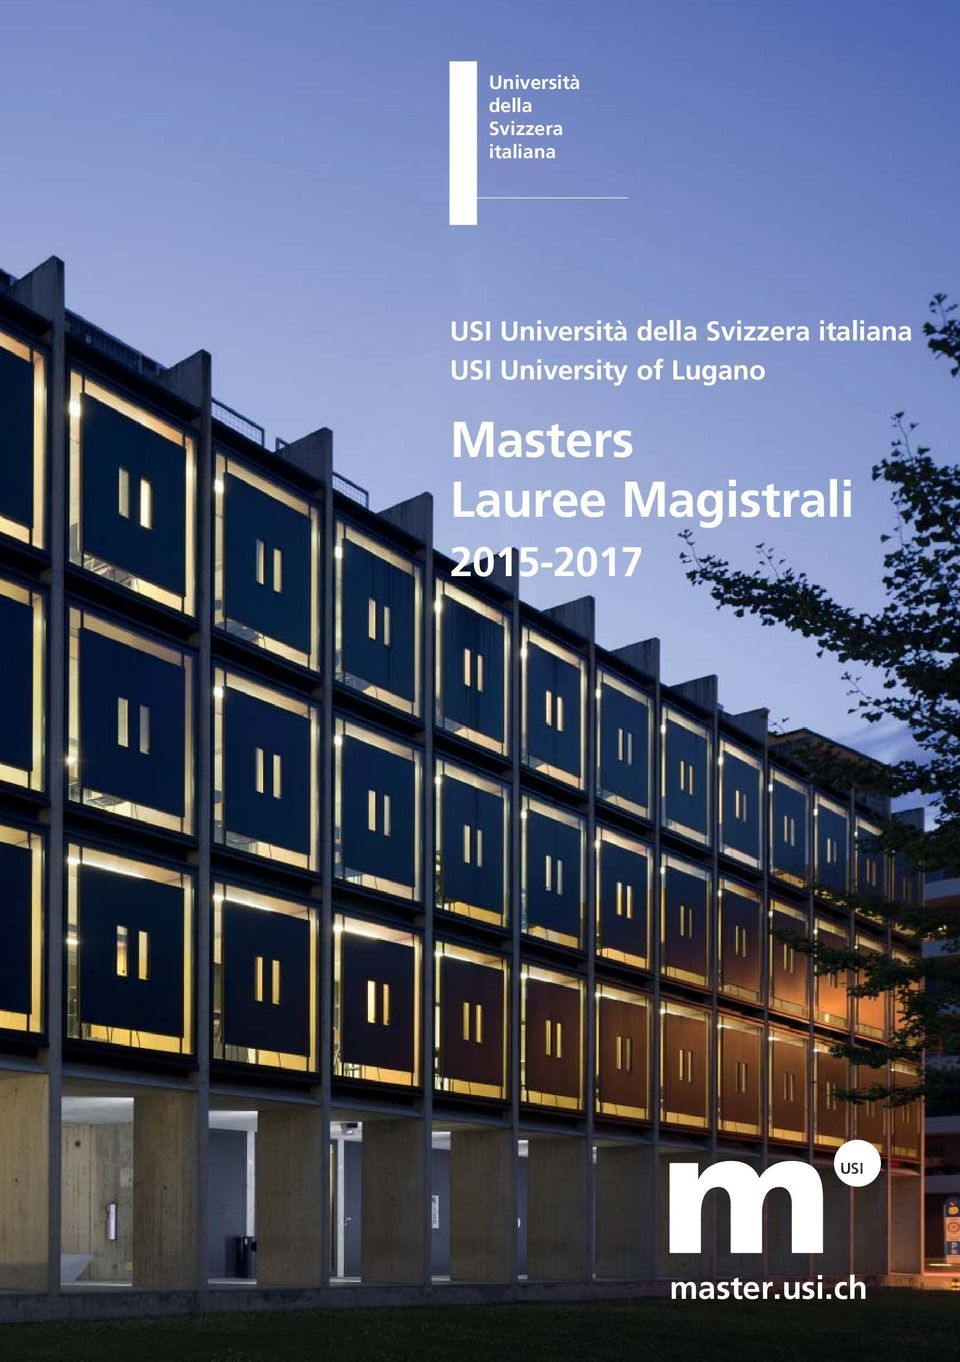 Masters Lauree Magistrali 2015-2017